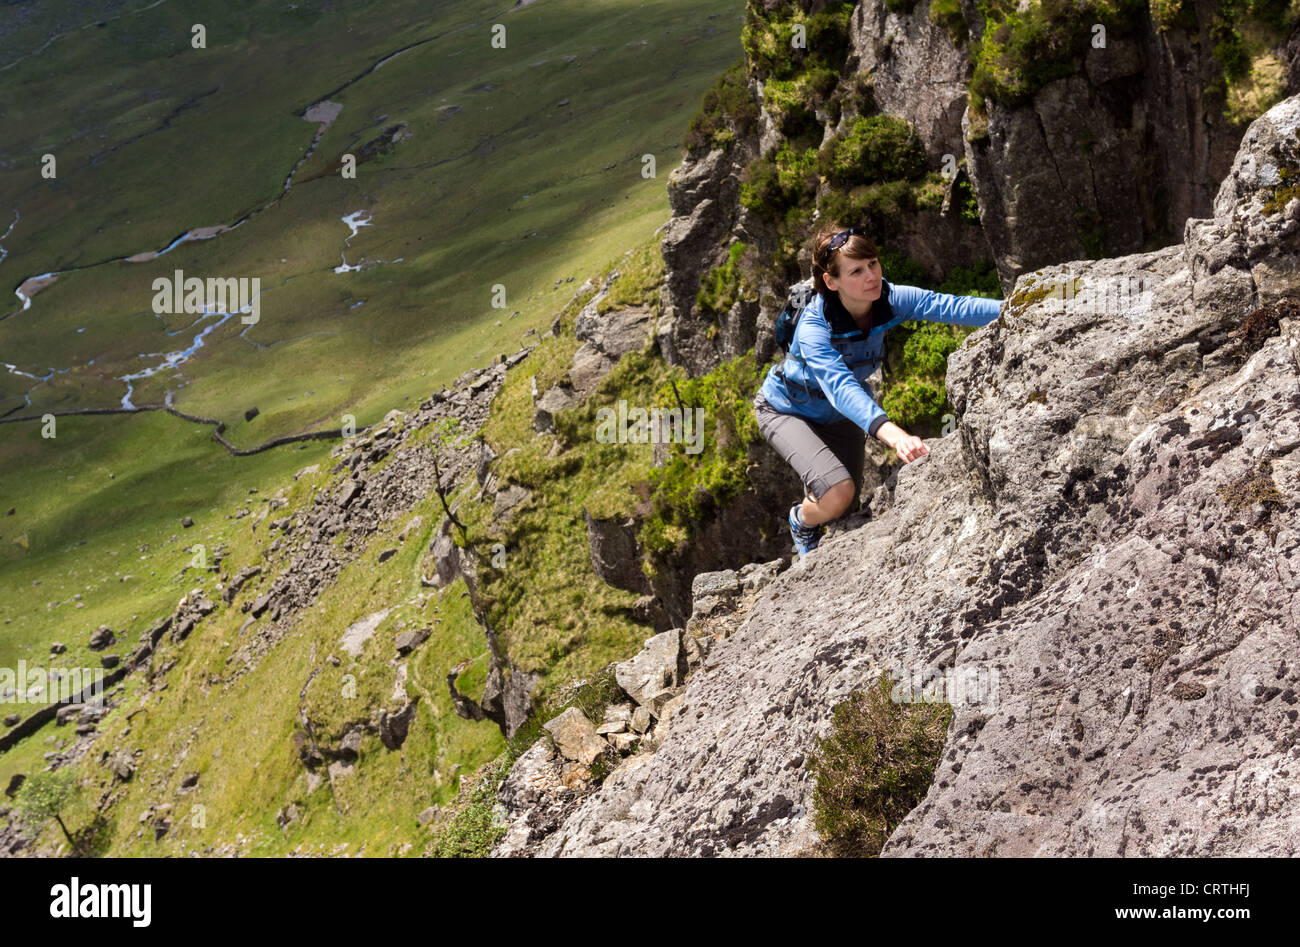 Un Gillercombe rock scrambler sur Crag (lapins foulèrent brouiller) sur Knotts gris dans le Lake District, Photo Stock